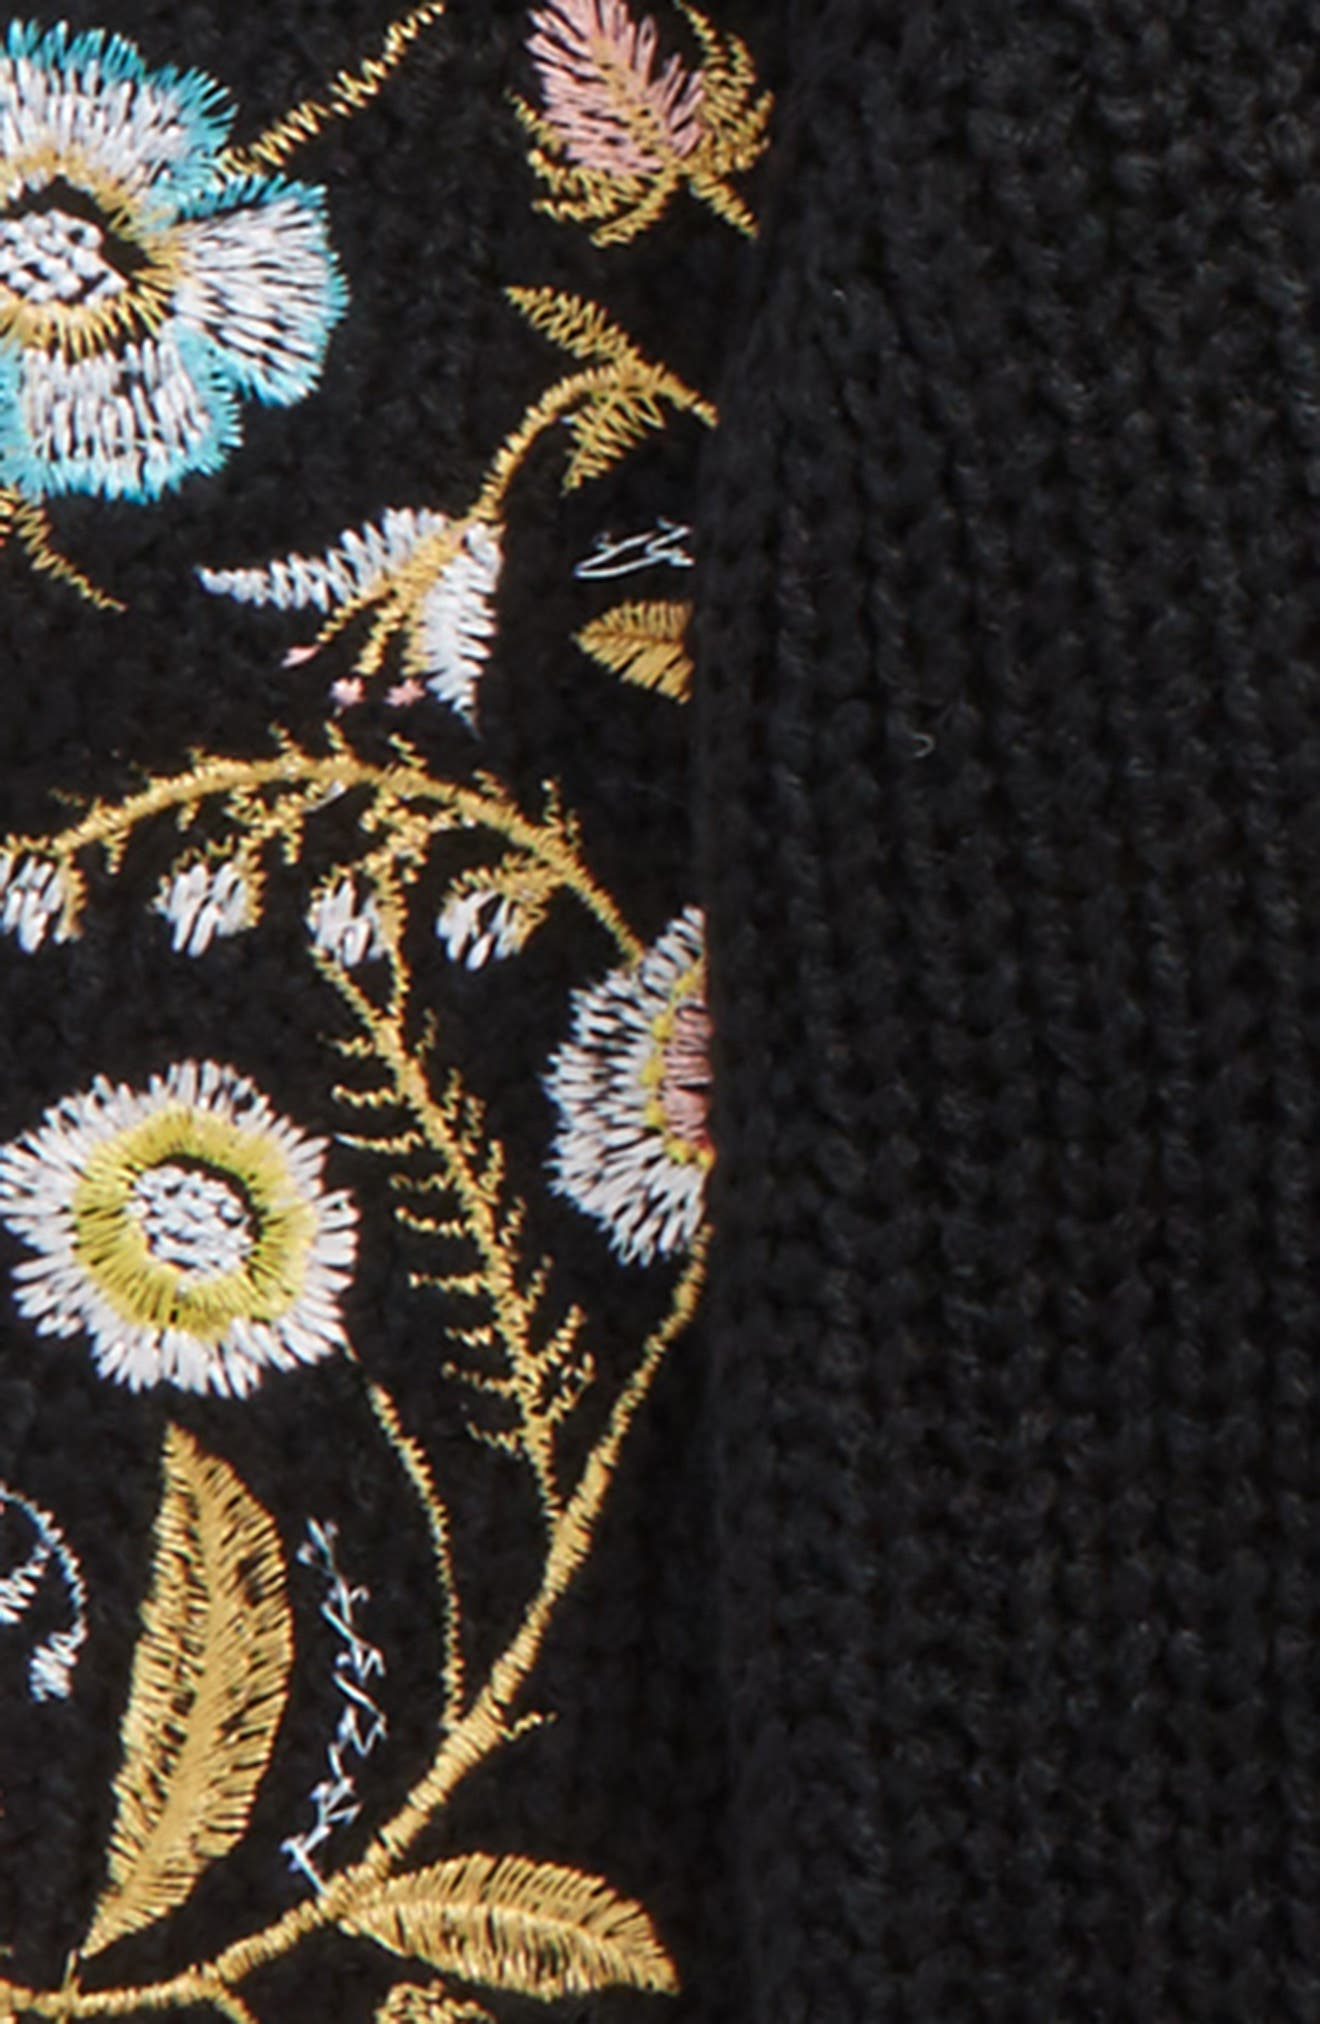 Embroidered Sleeve Sweater,                             Alternate thumbnail 2, color,                             001